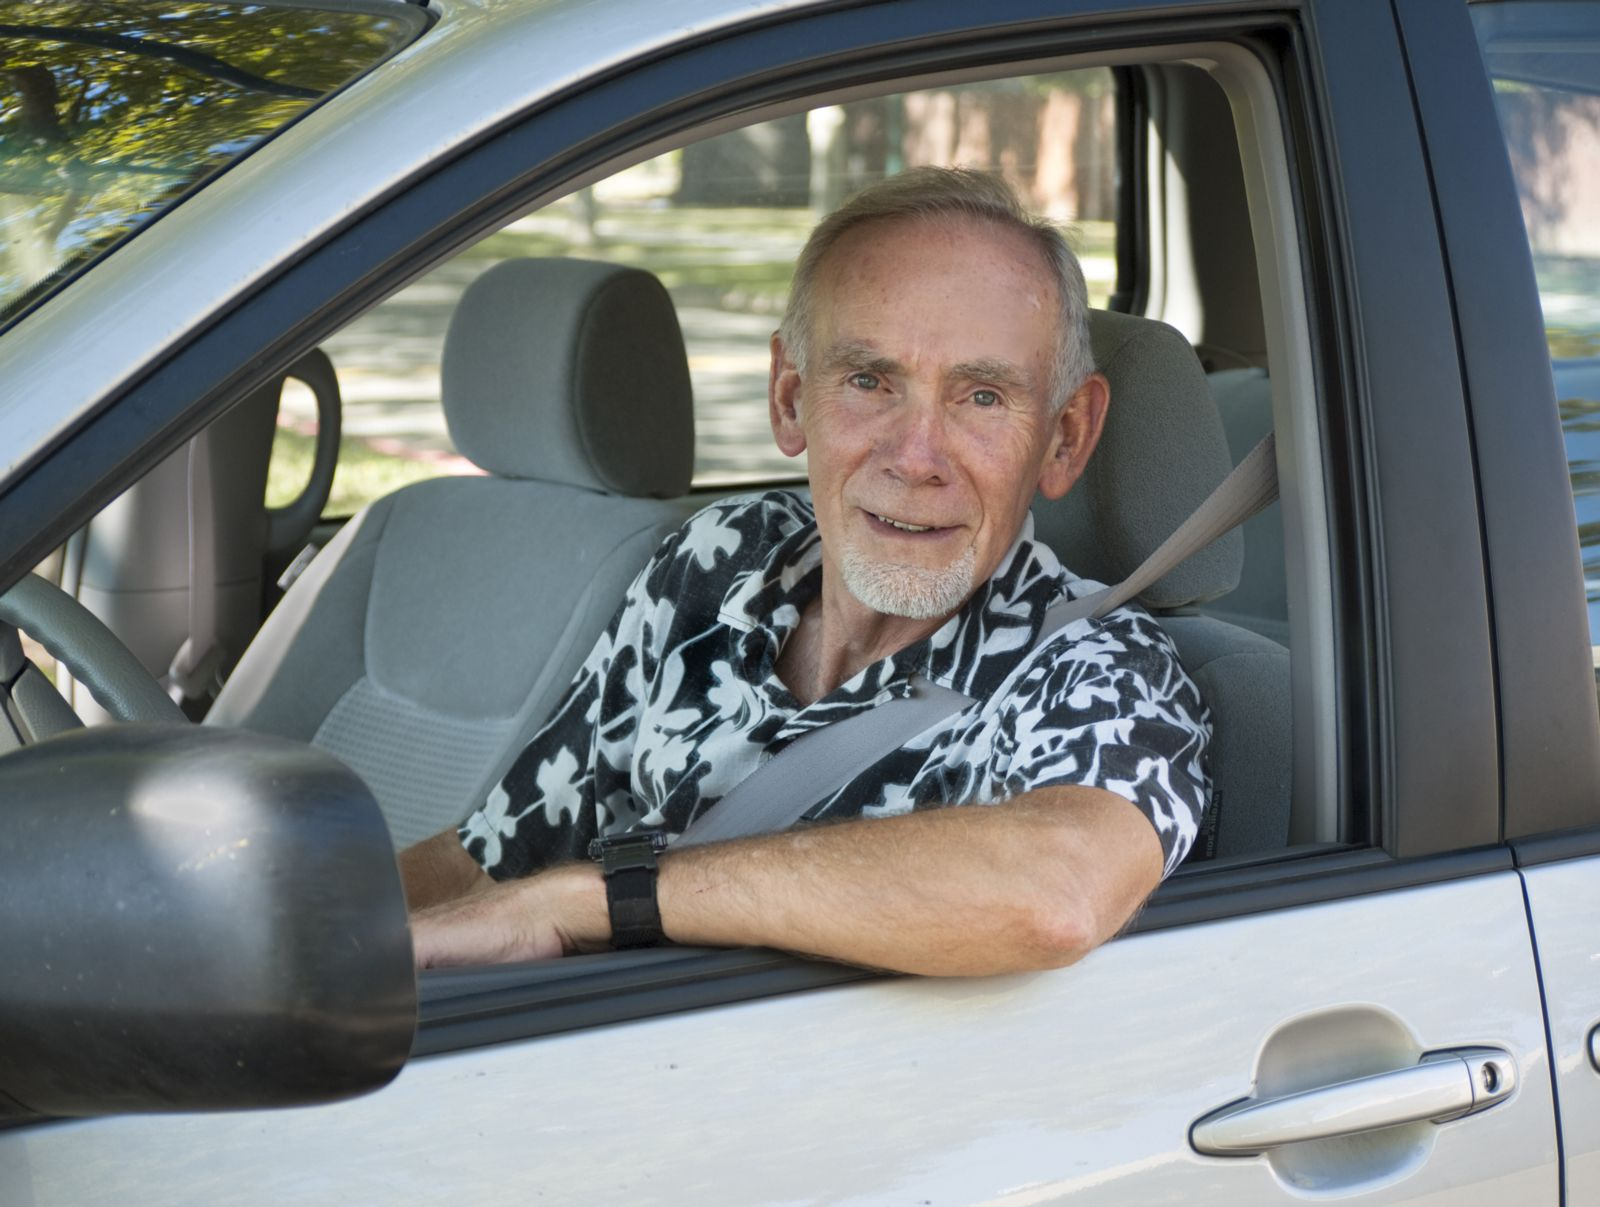 Elderly Man Sitting in Vehicle